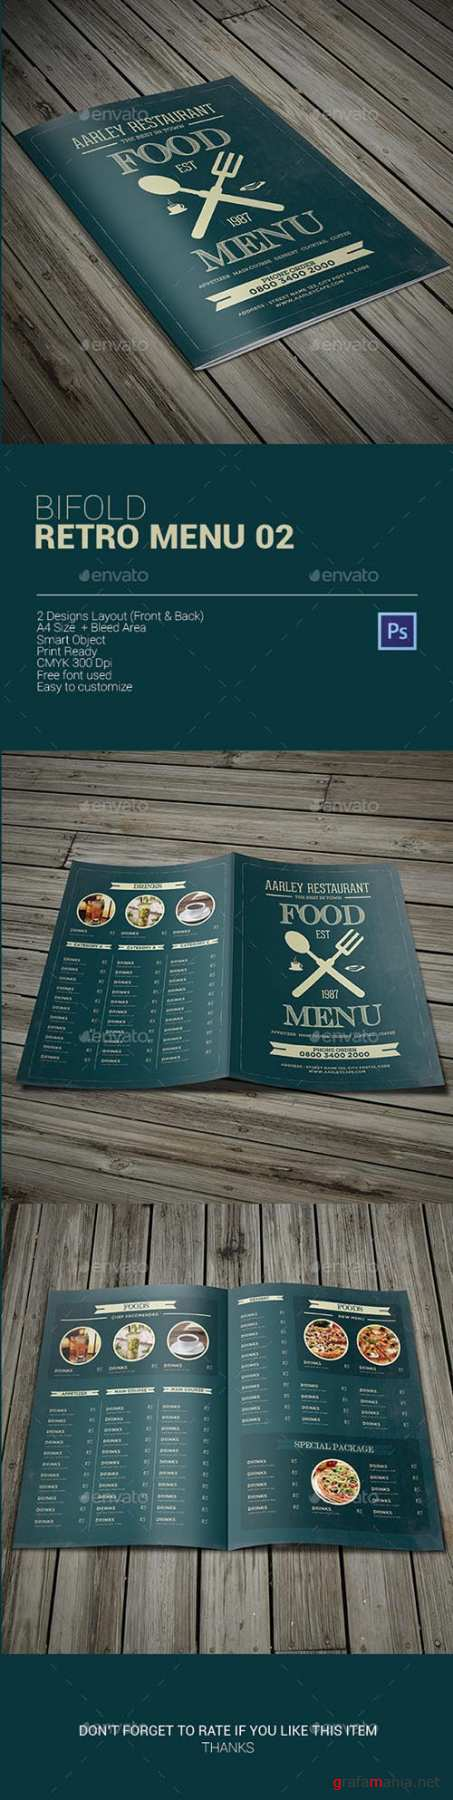 GR - Bifold Retro Menu 02 9911545